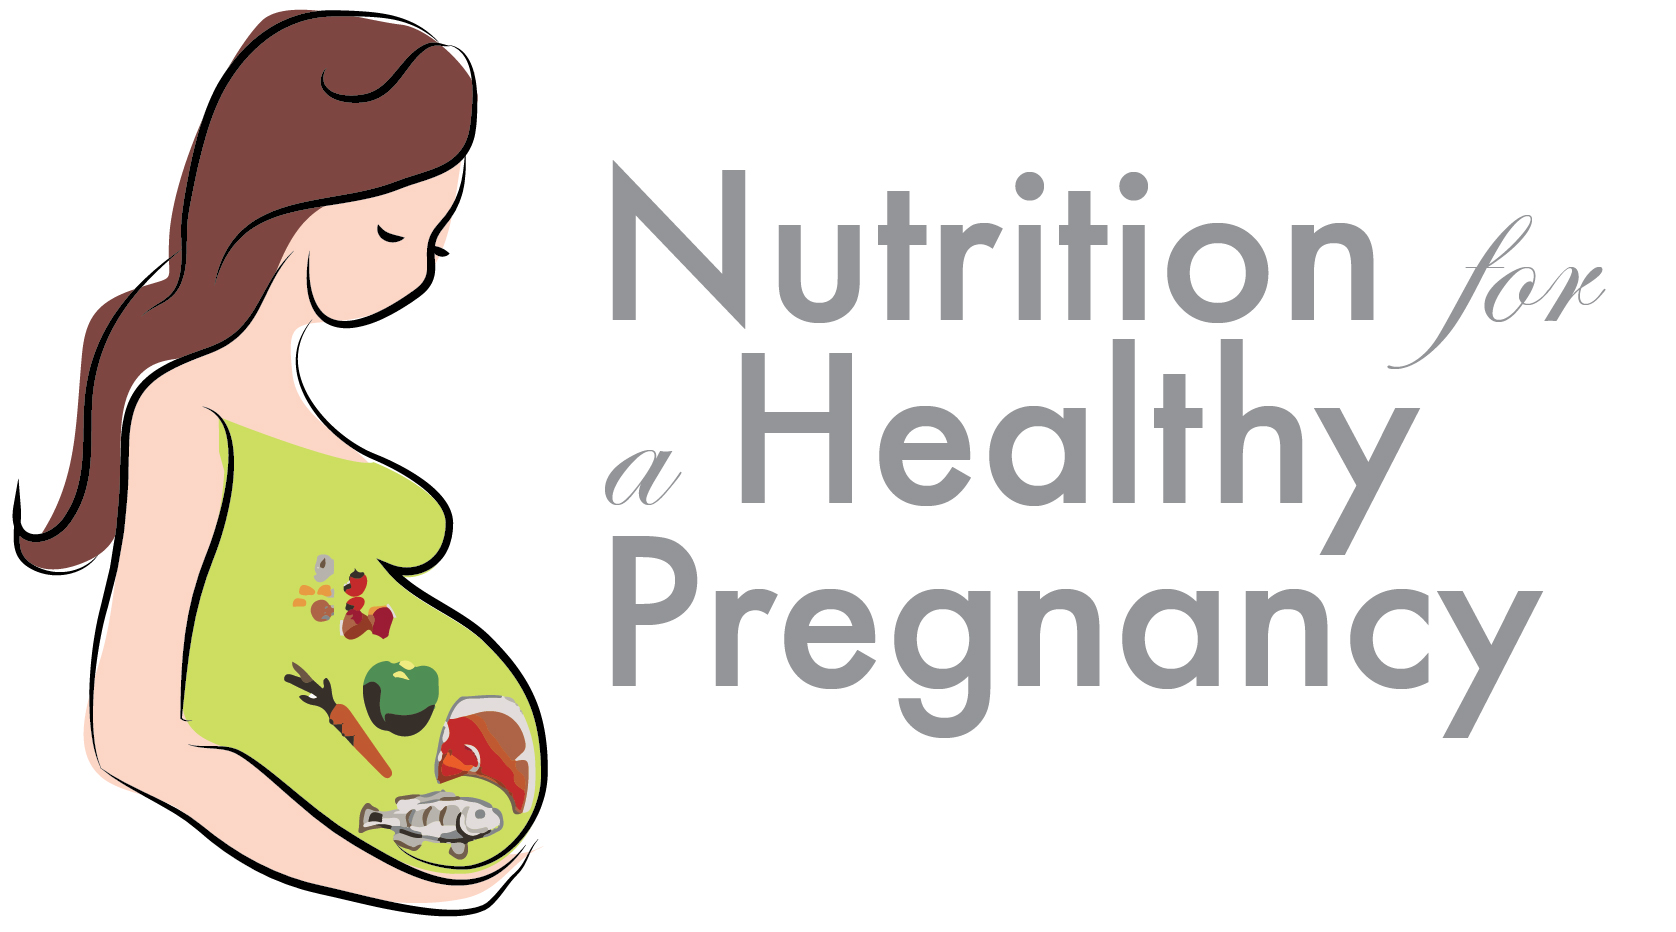 Nutrition for Pregnancy.